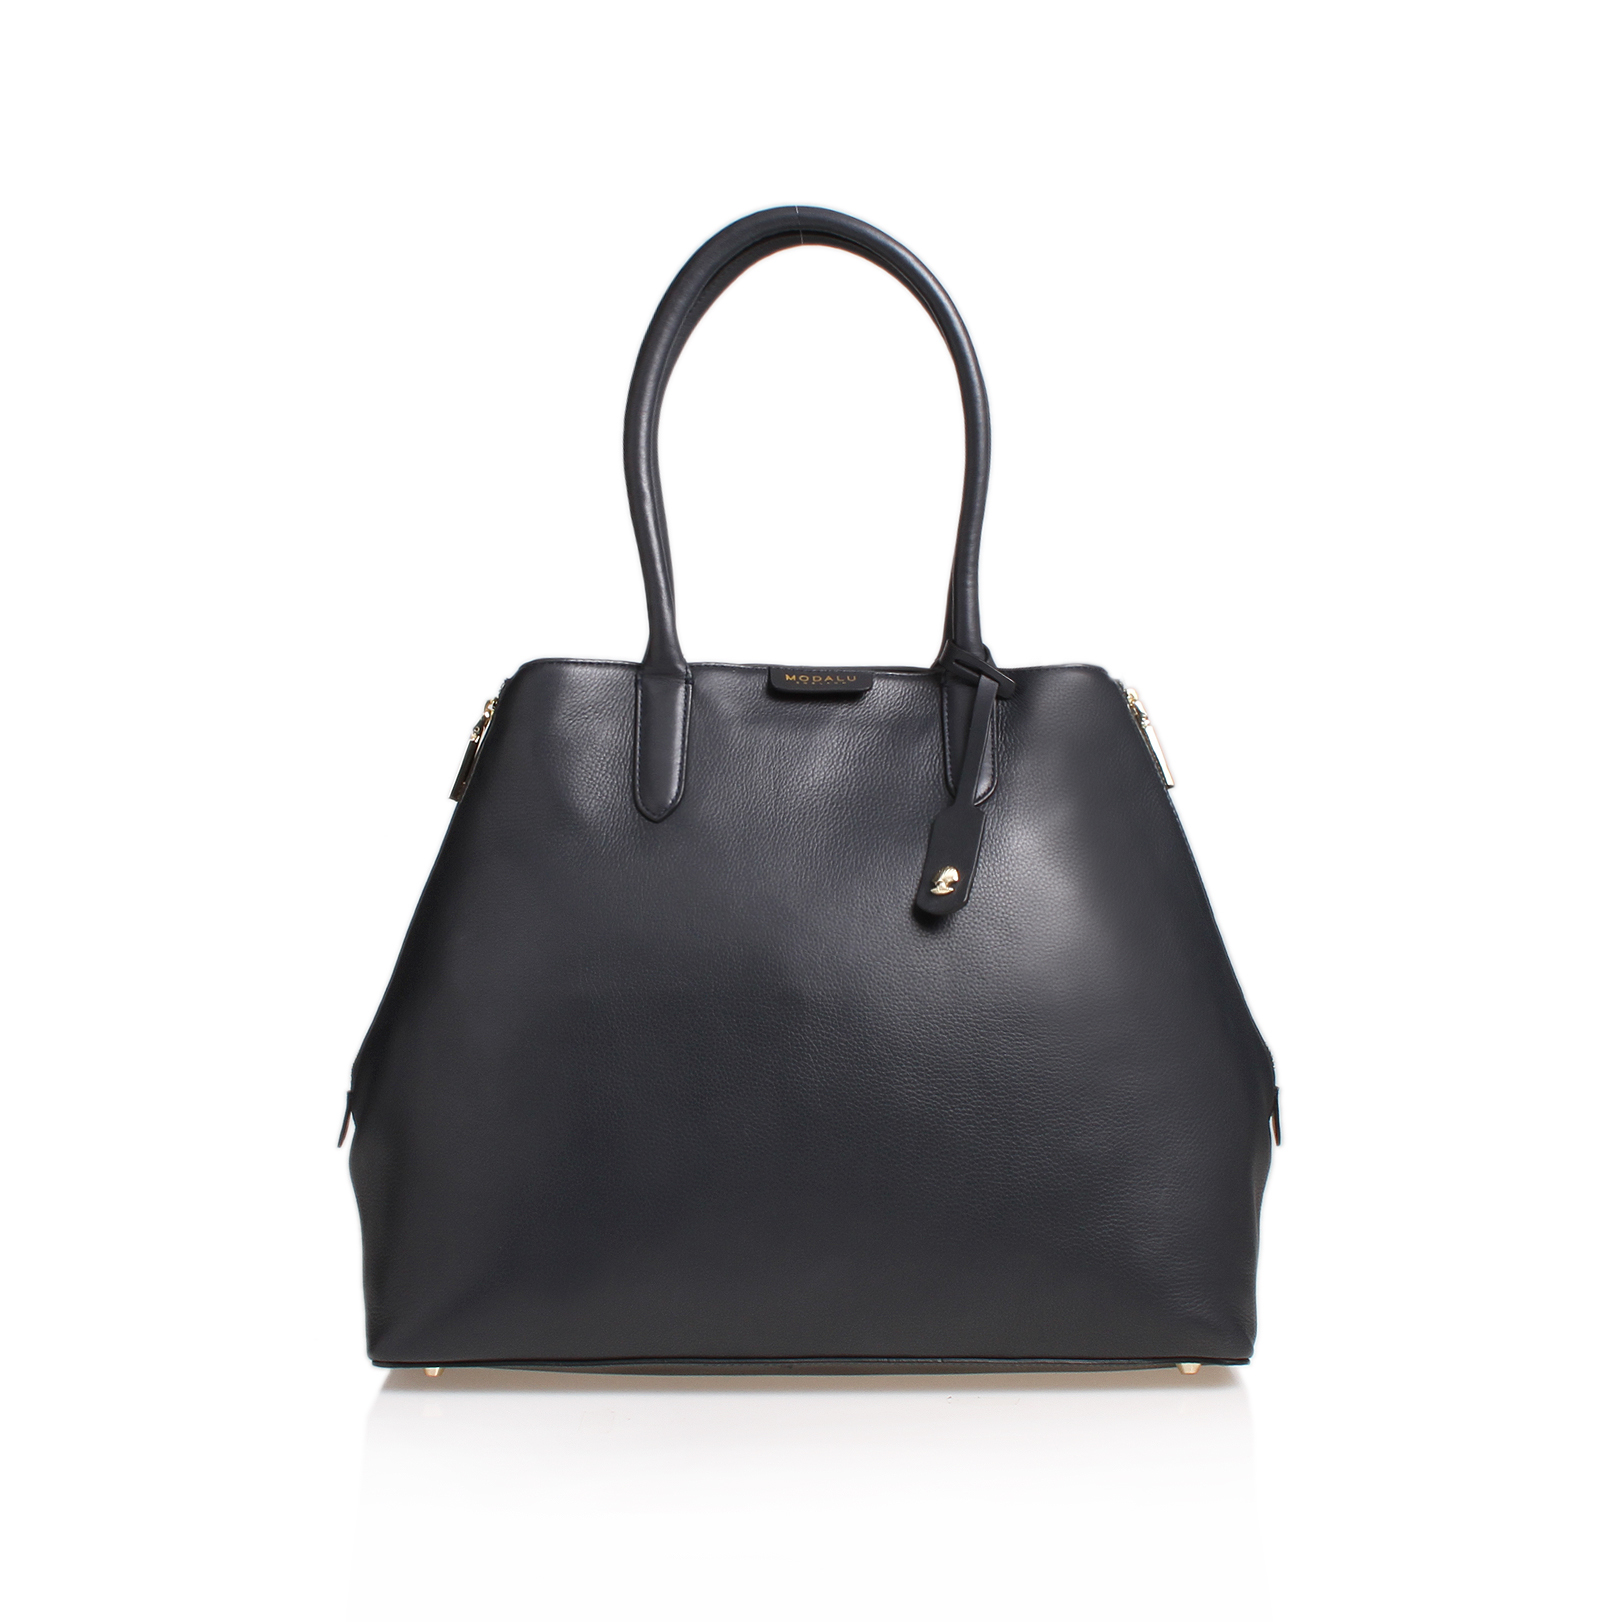 HARRIS LEATHER BAG